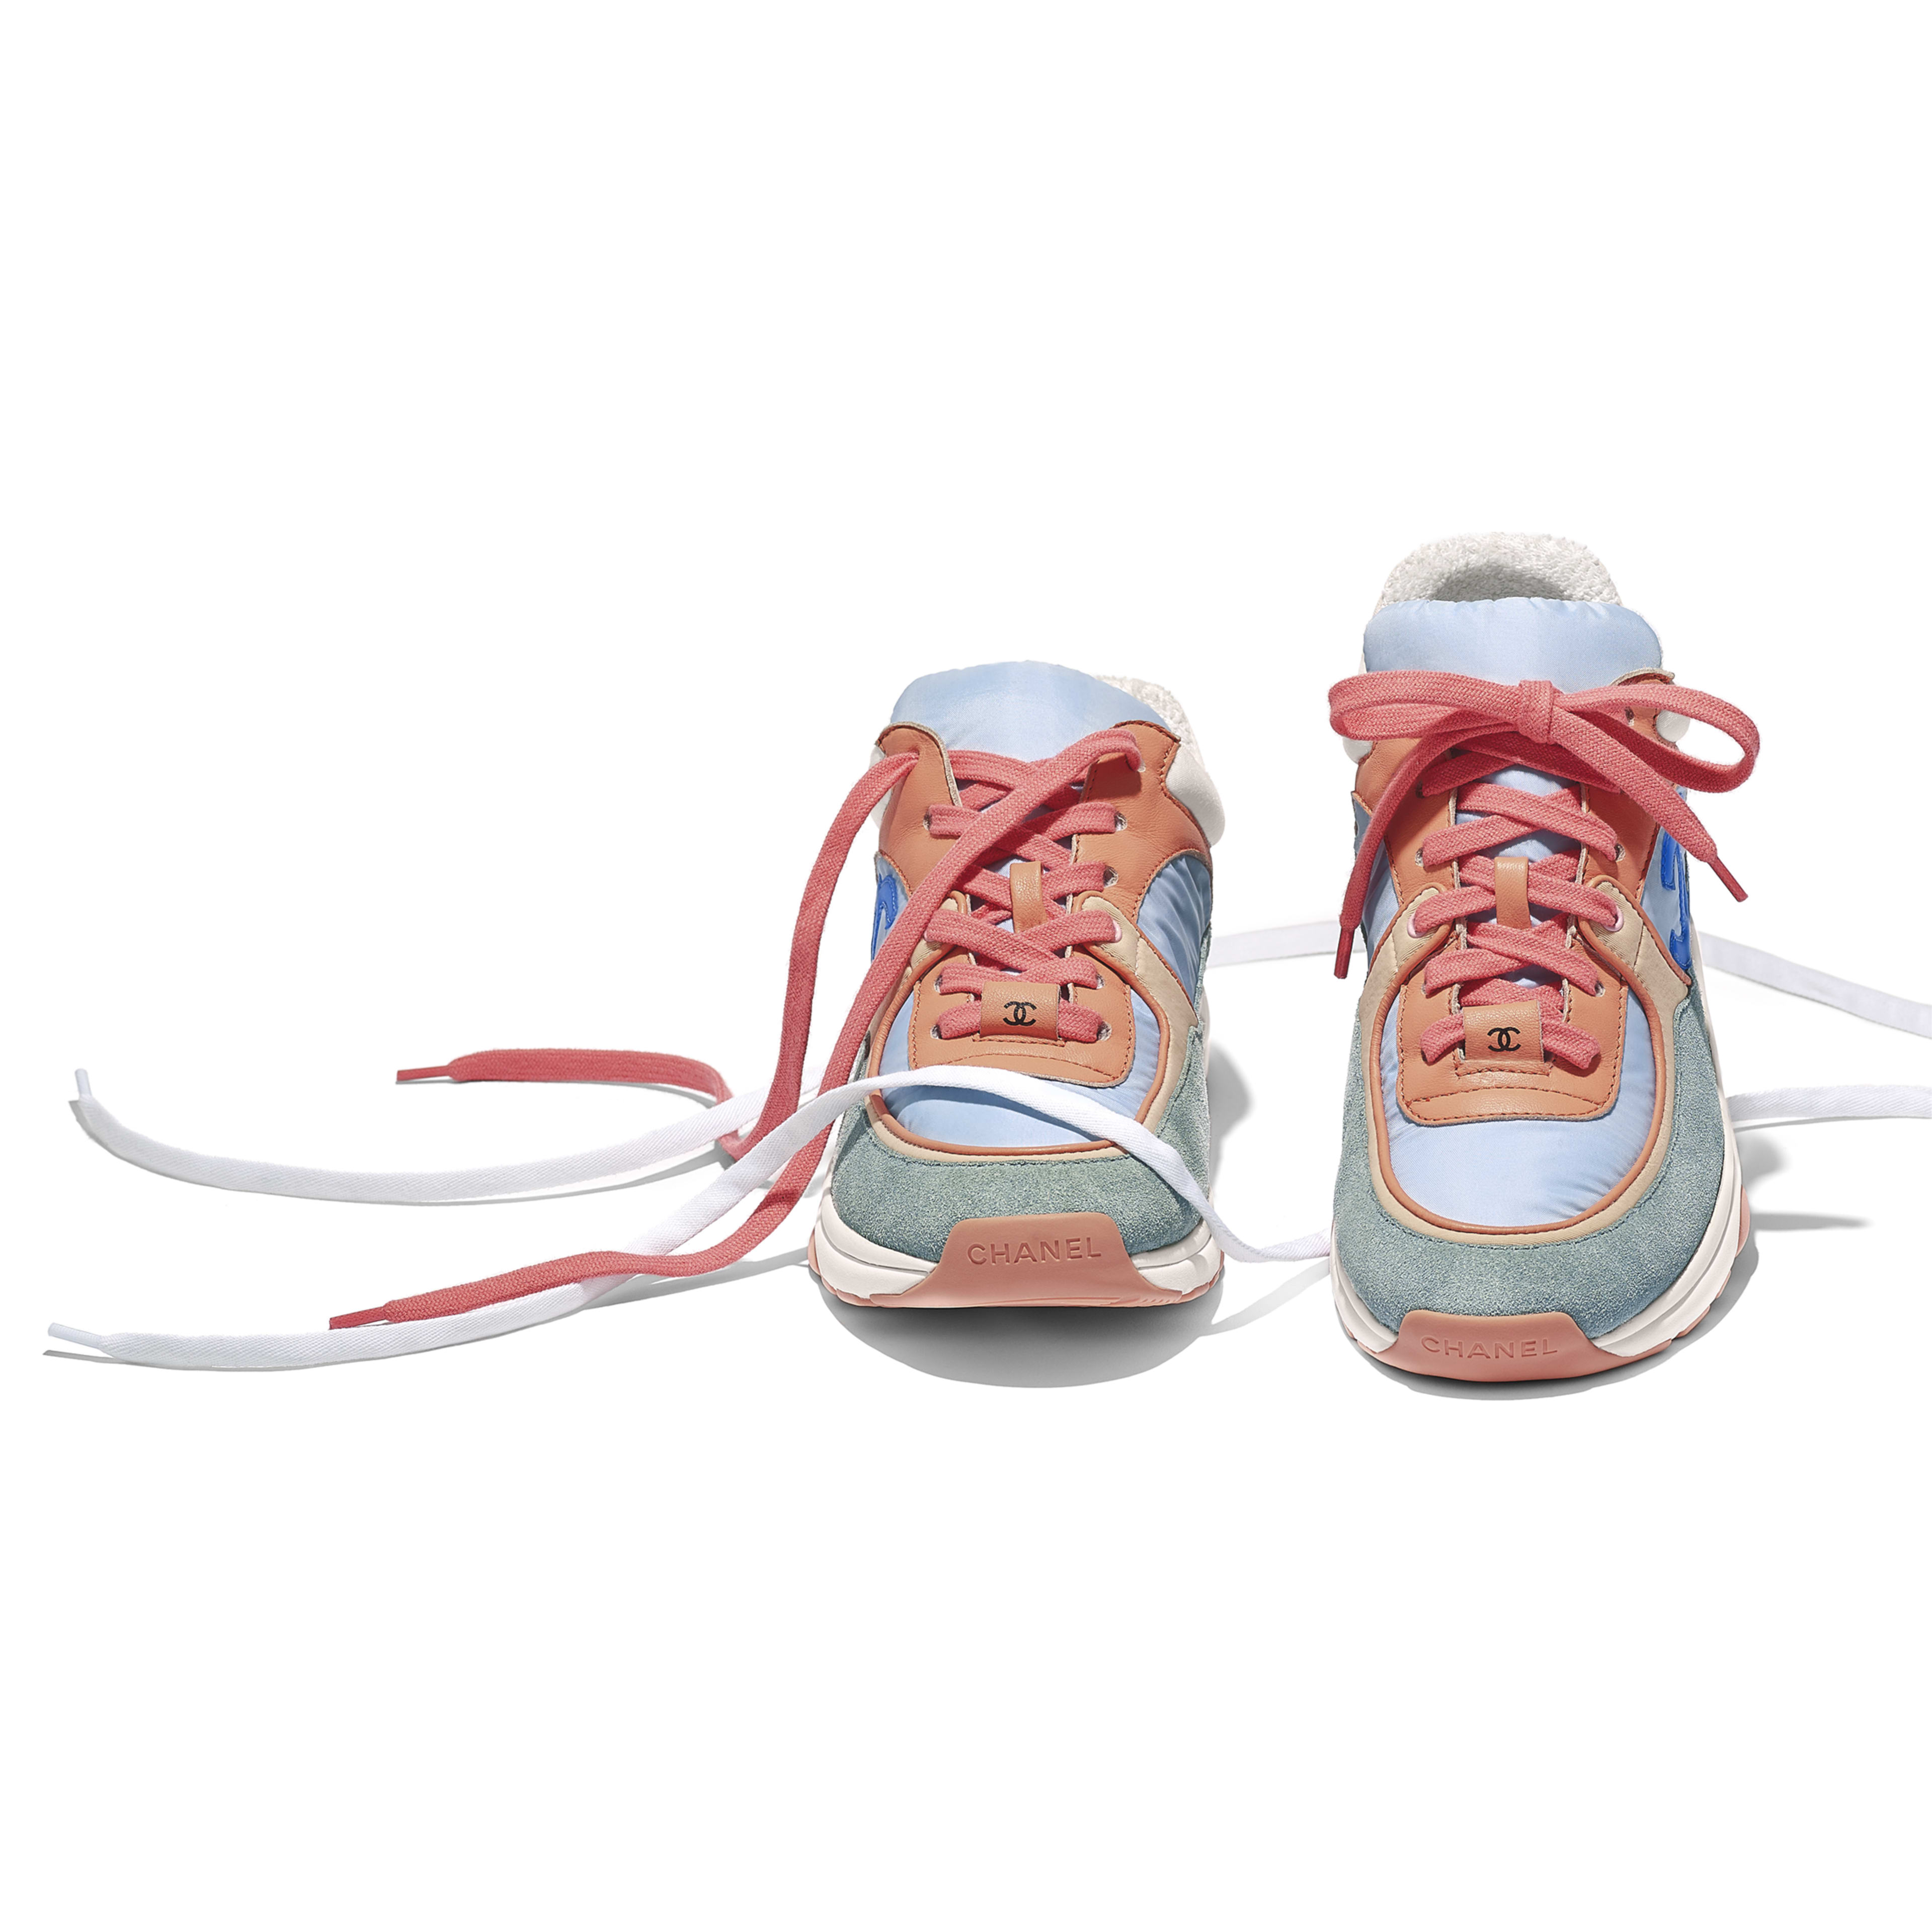 Sneakers - Coral, Light Blue & White - Nylon, Lambskin & Suede Calfskin - Other view - see full sized version